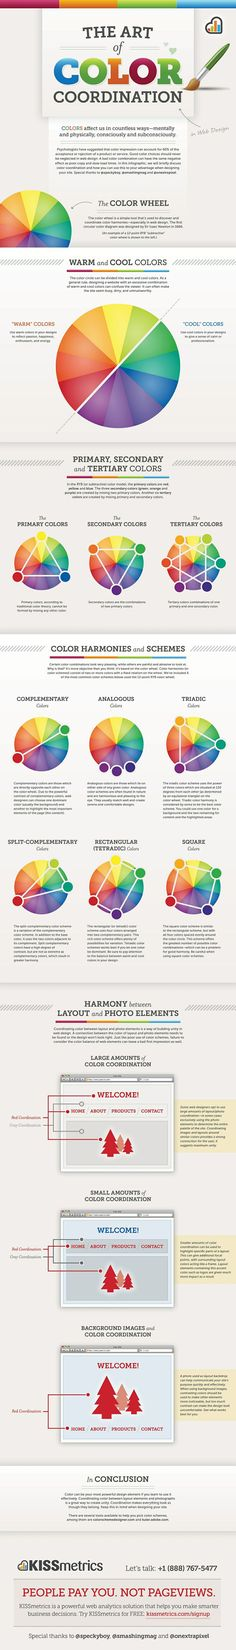 Colors affect us in countless ways—mentally and physically, consciously and subconsciously. Very useful graphic!